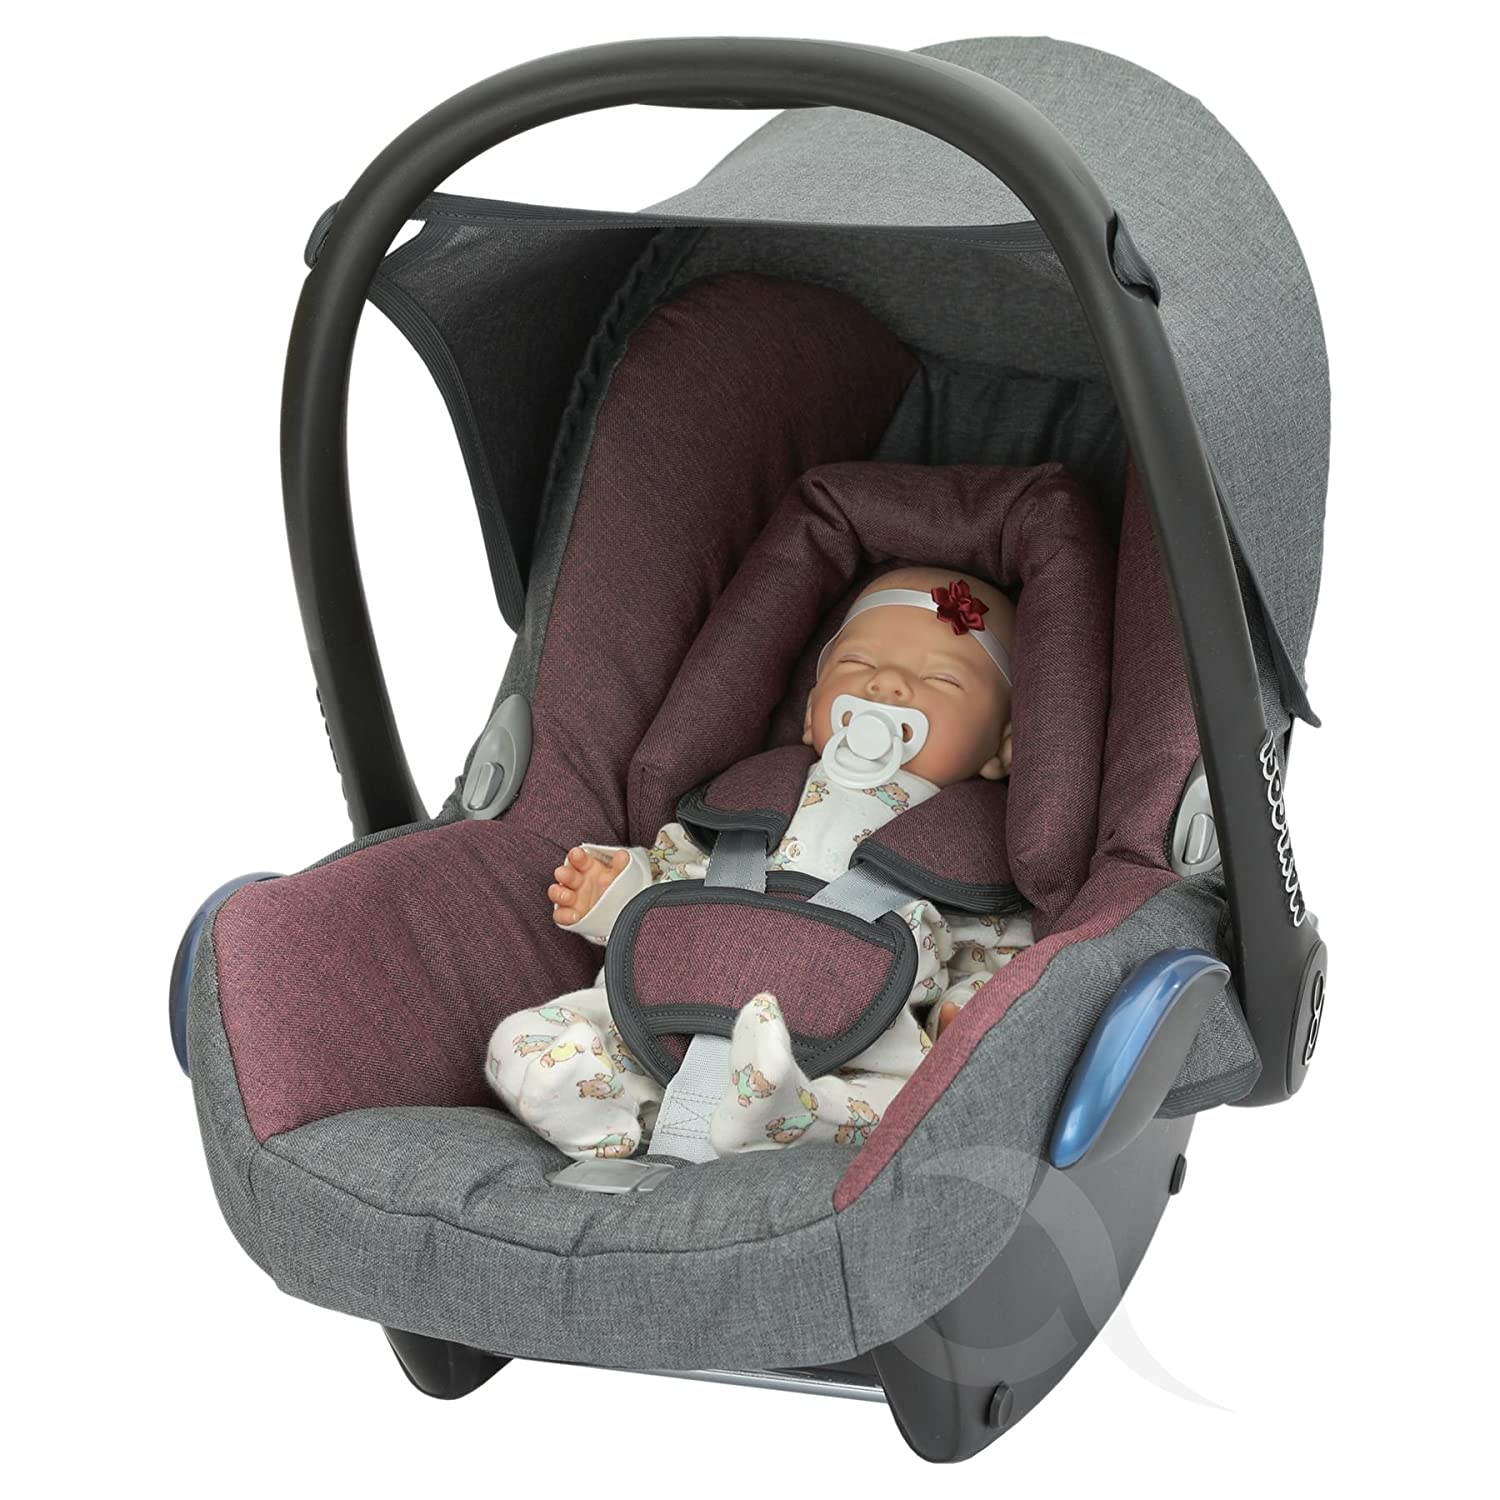 Replacement Seat Cover fits Maxi Cosi CabrioFix 0+ modern - maroon/charcoal OLO